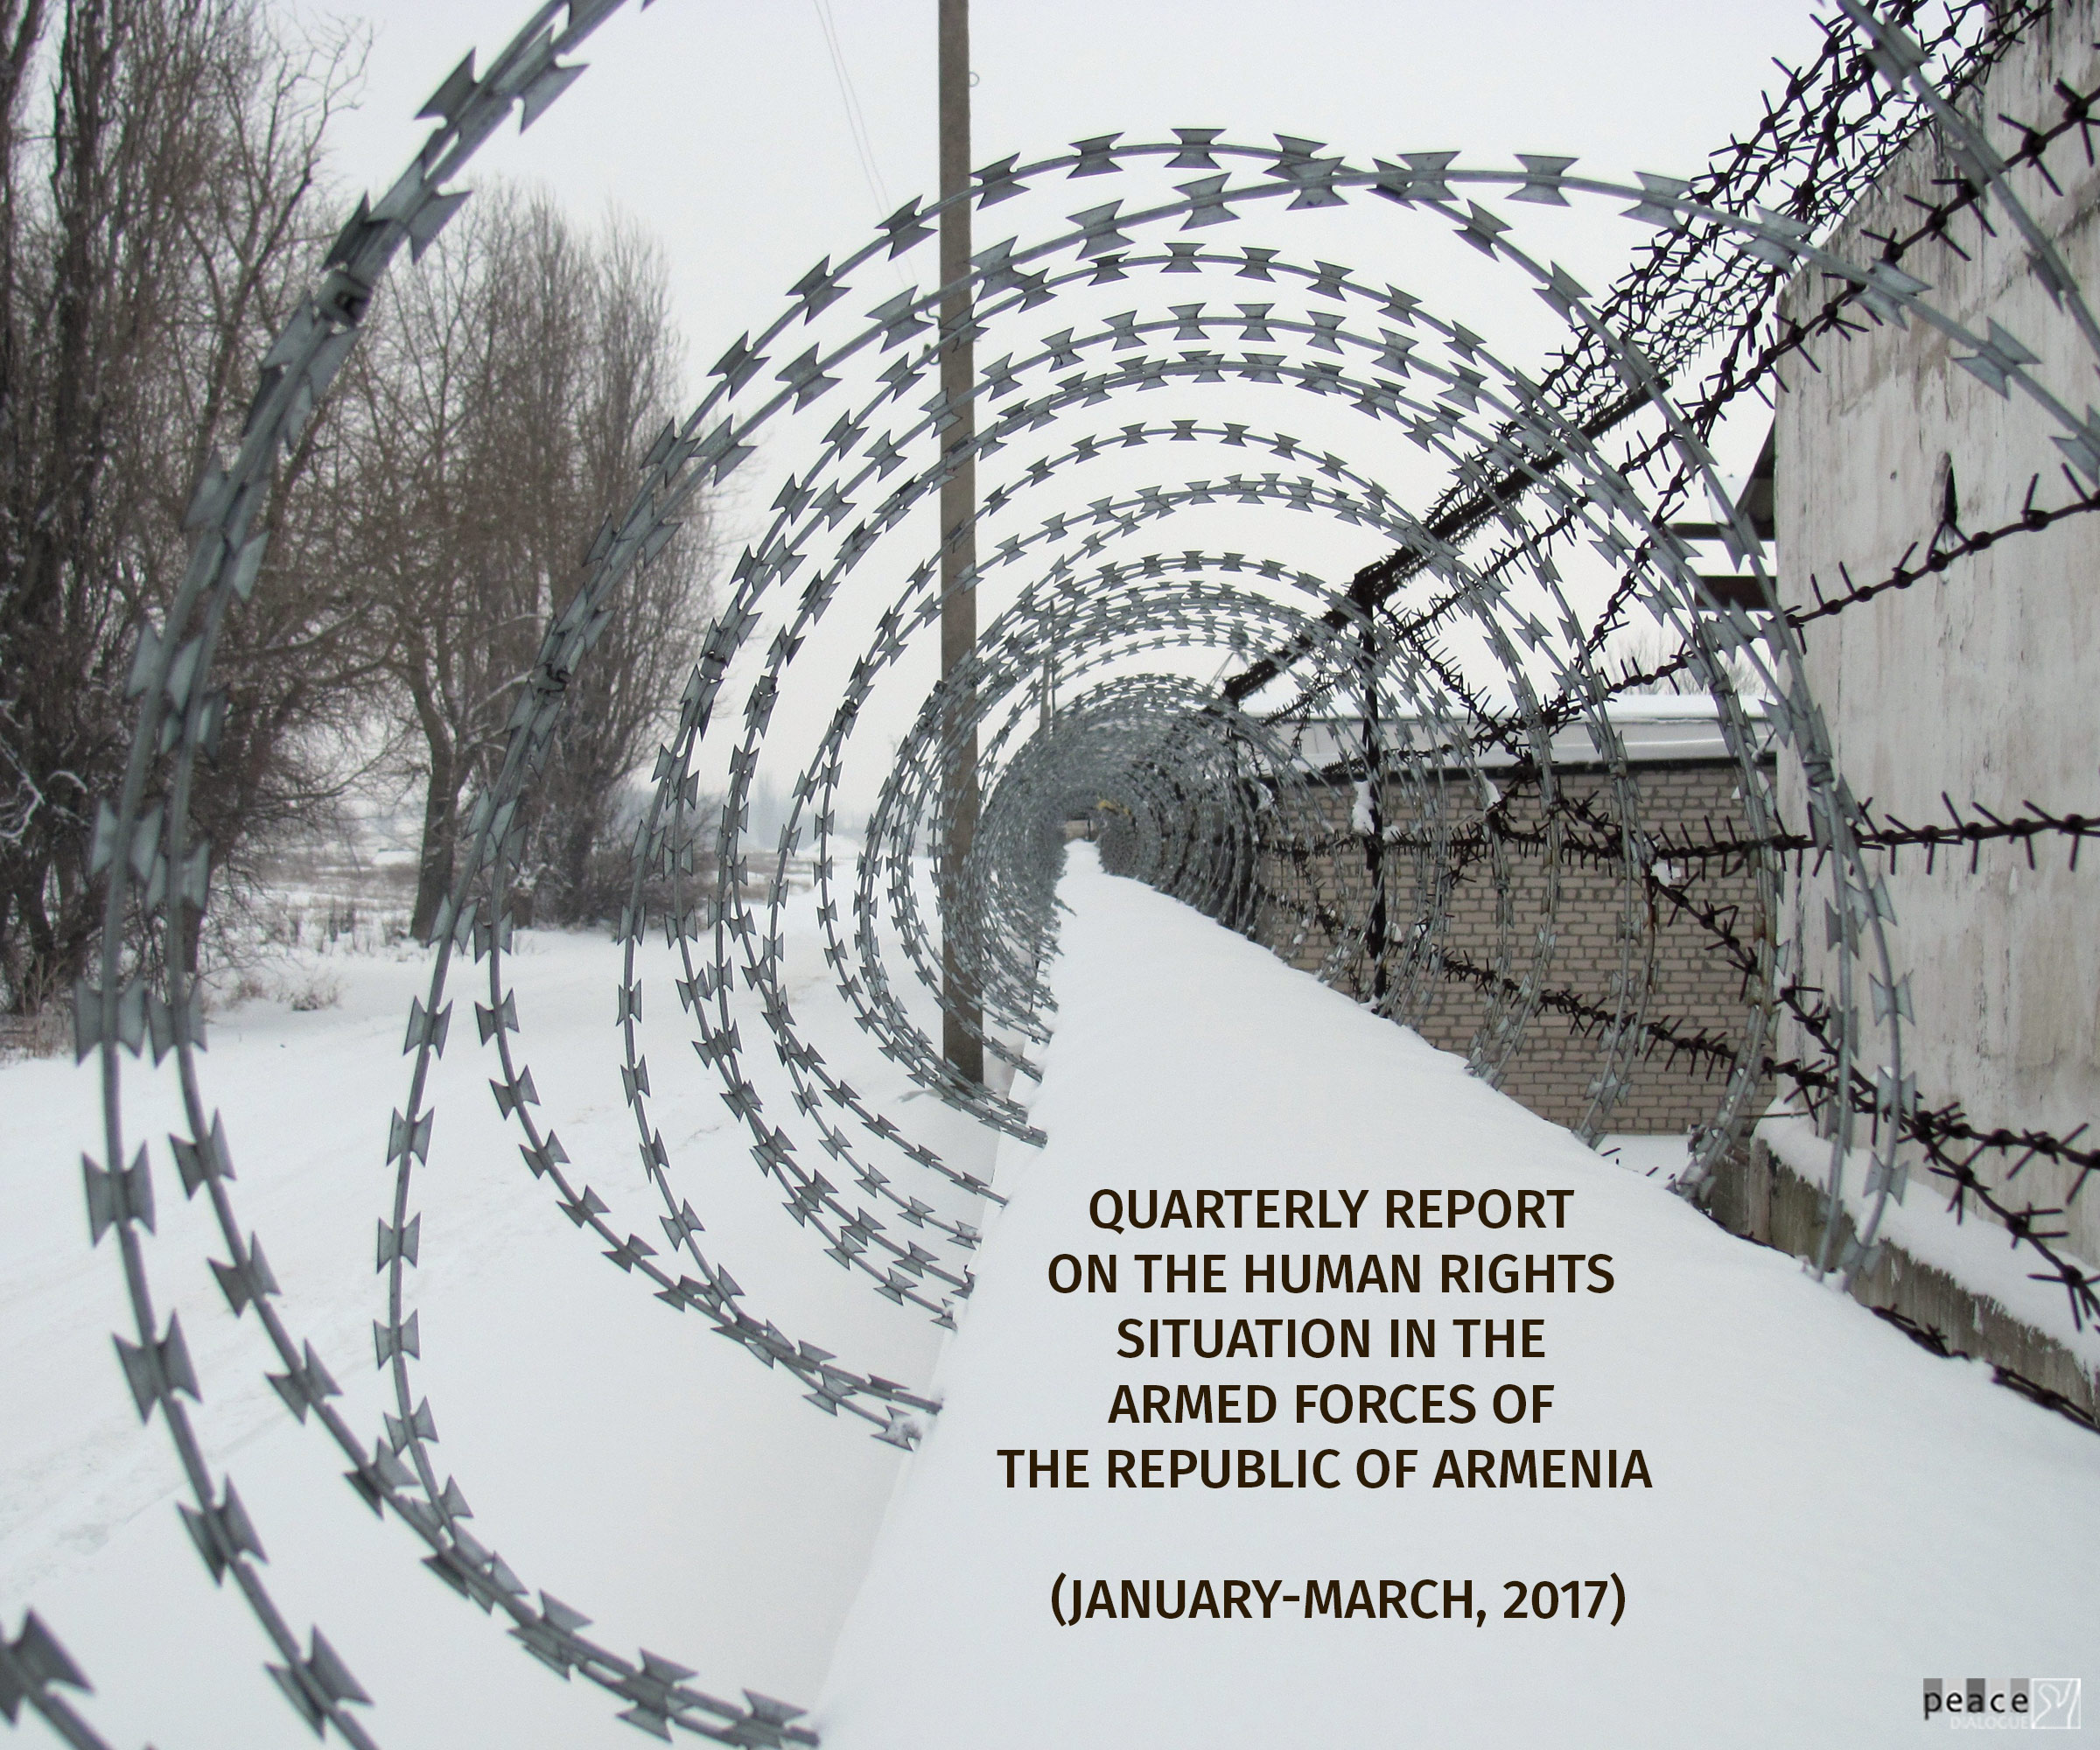 Quarterly Report on the Human Rights Situation in the Armed Forces of the Republic of Armenia (Vol.3)